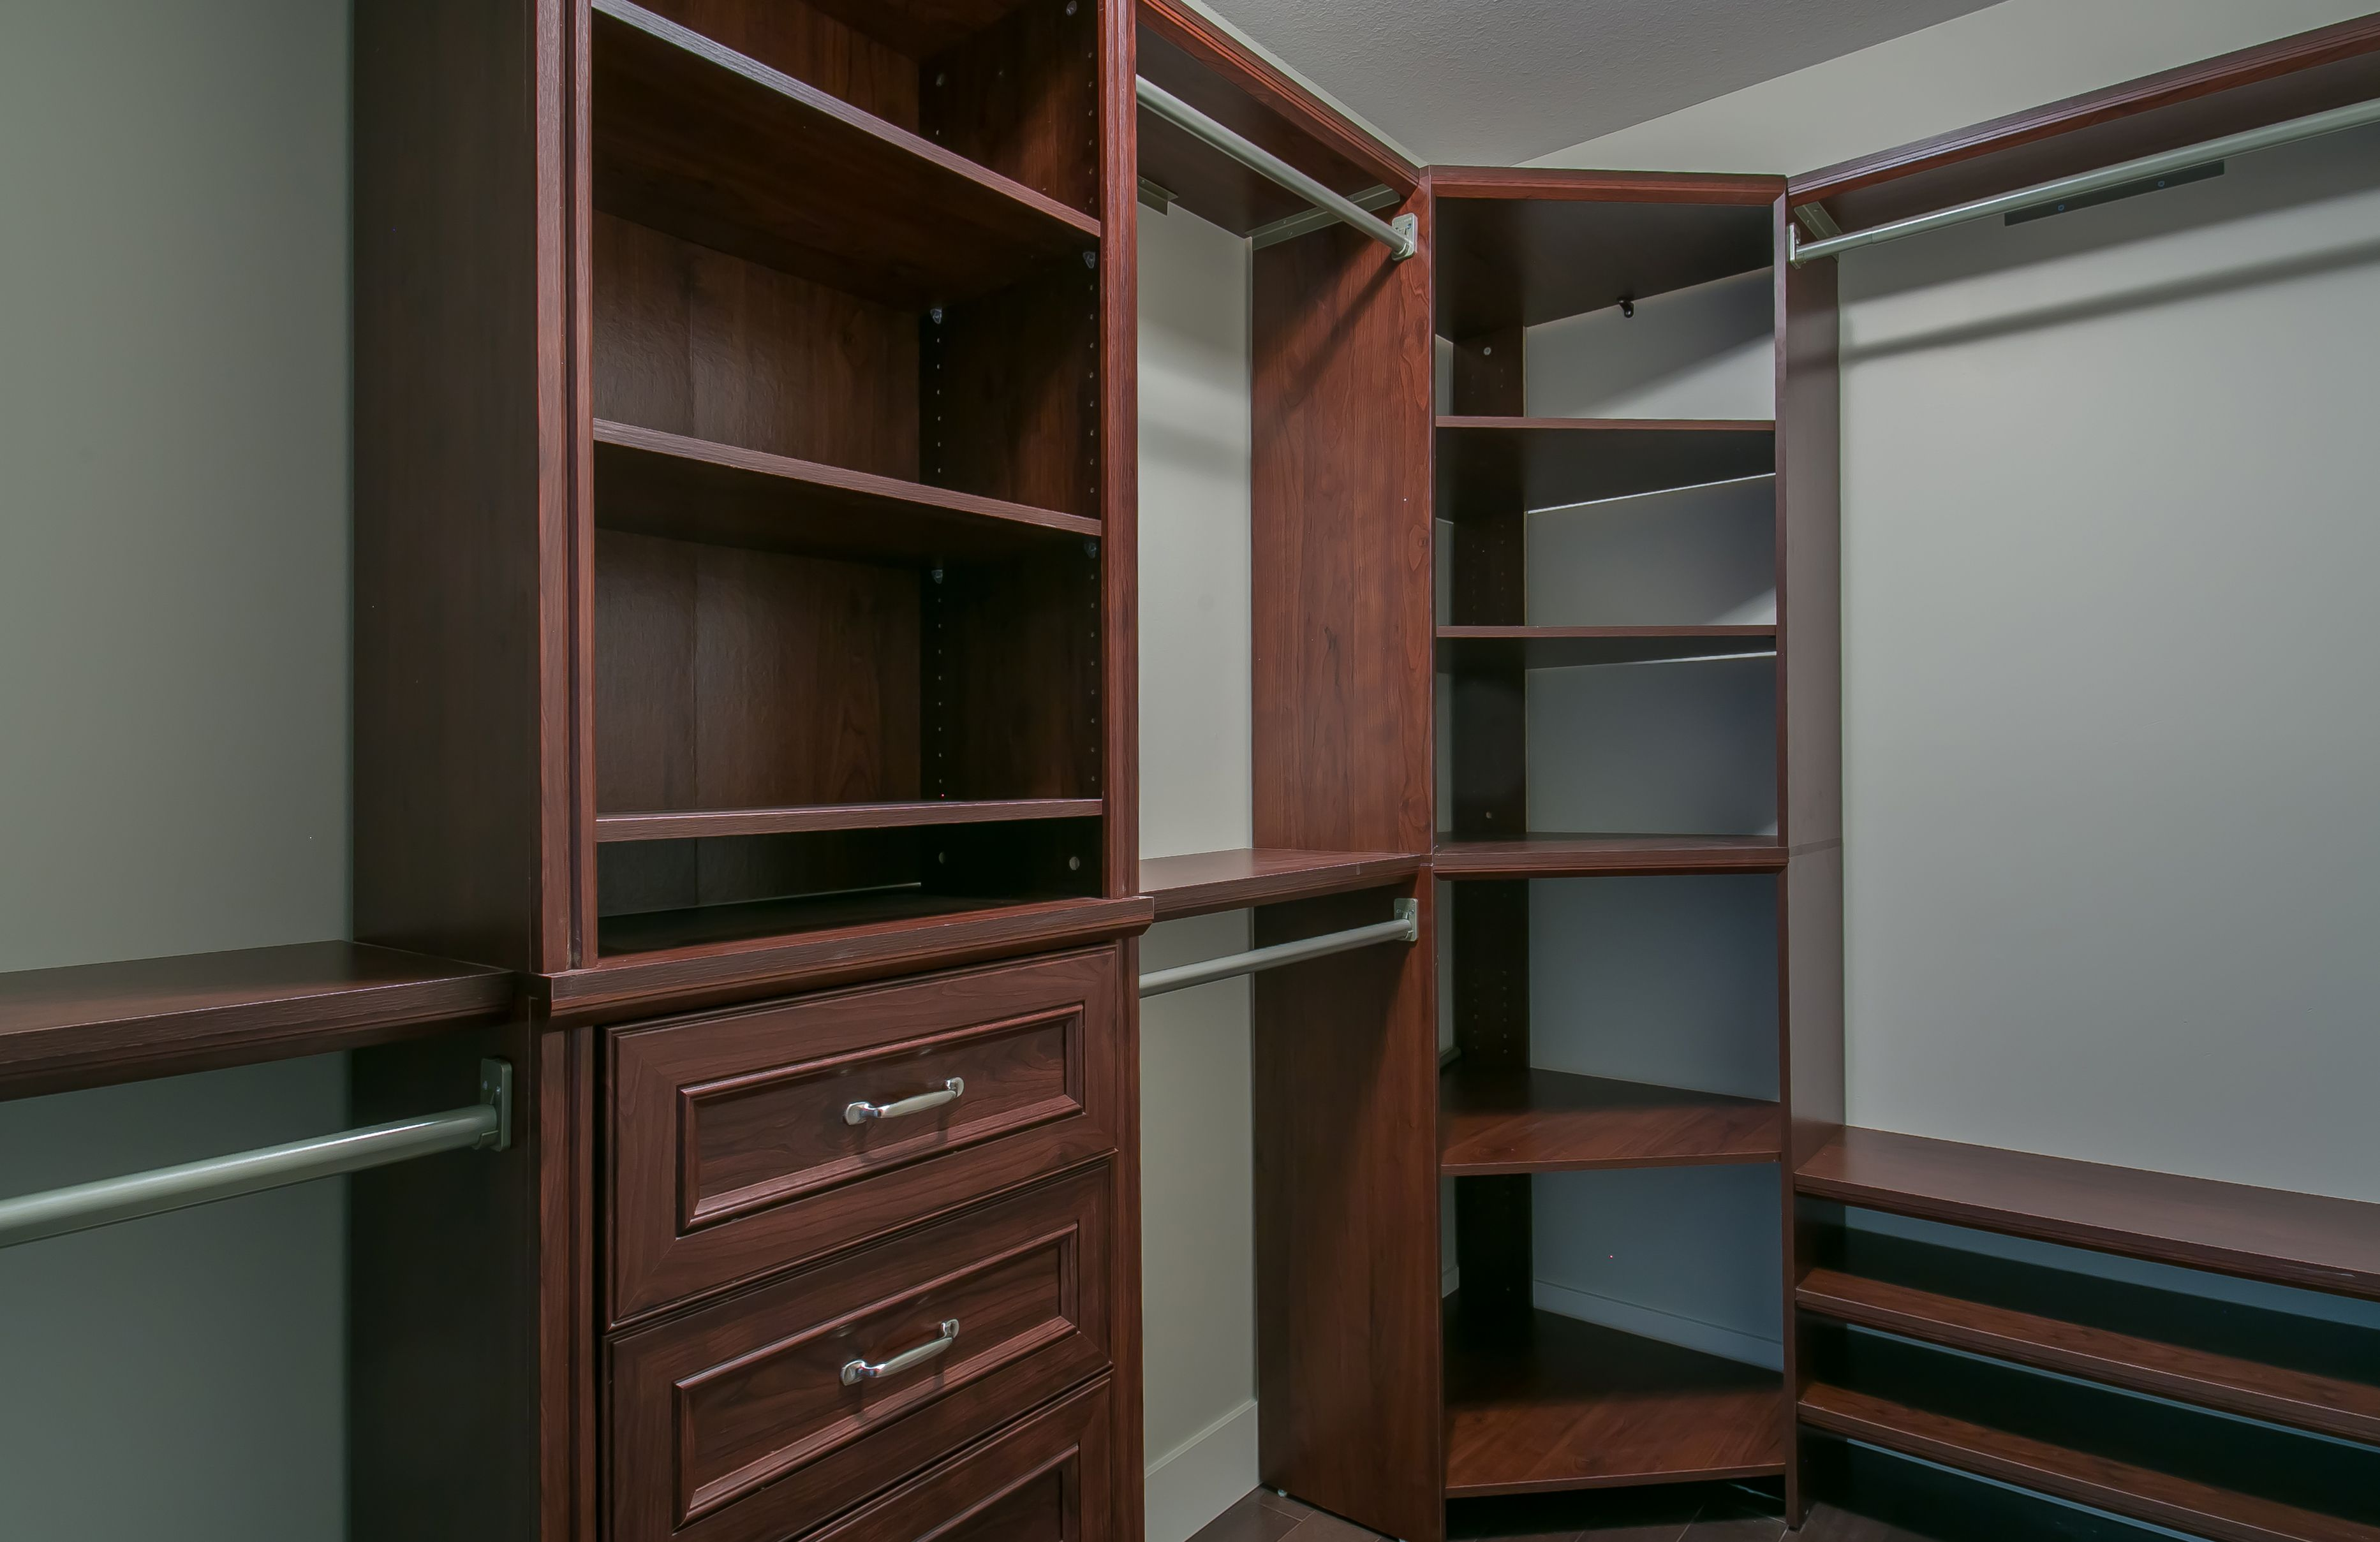 The Solution For Choosing Home Depot Closet Organizer For Your Home